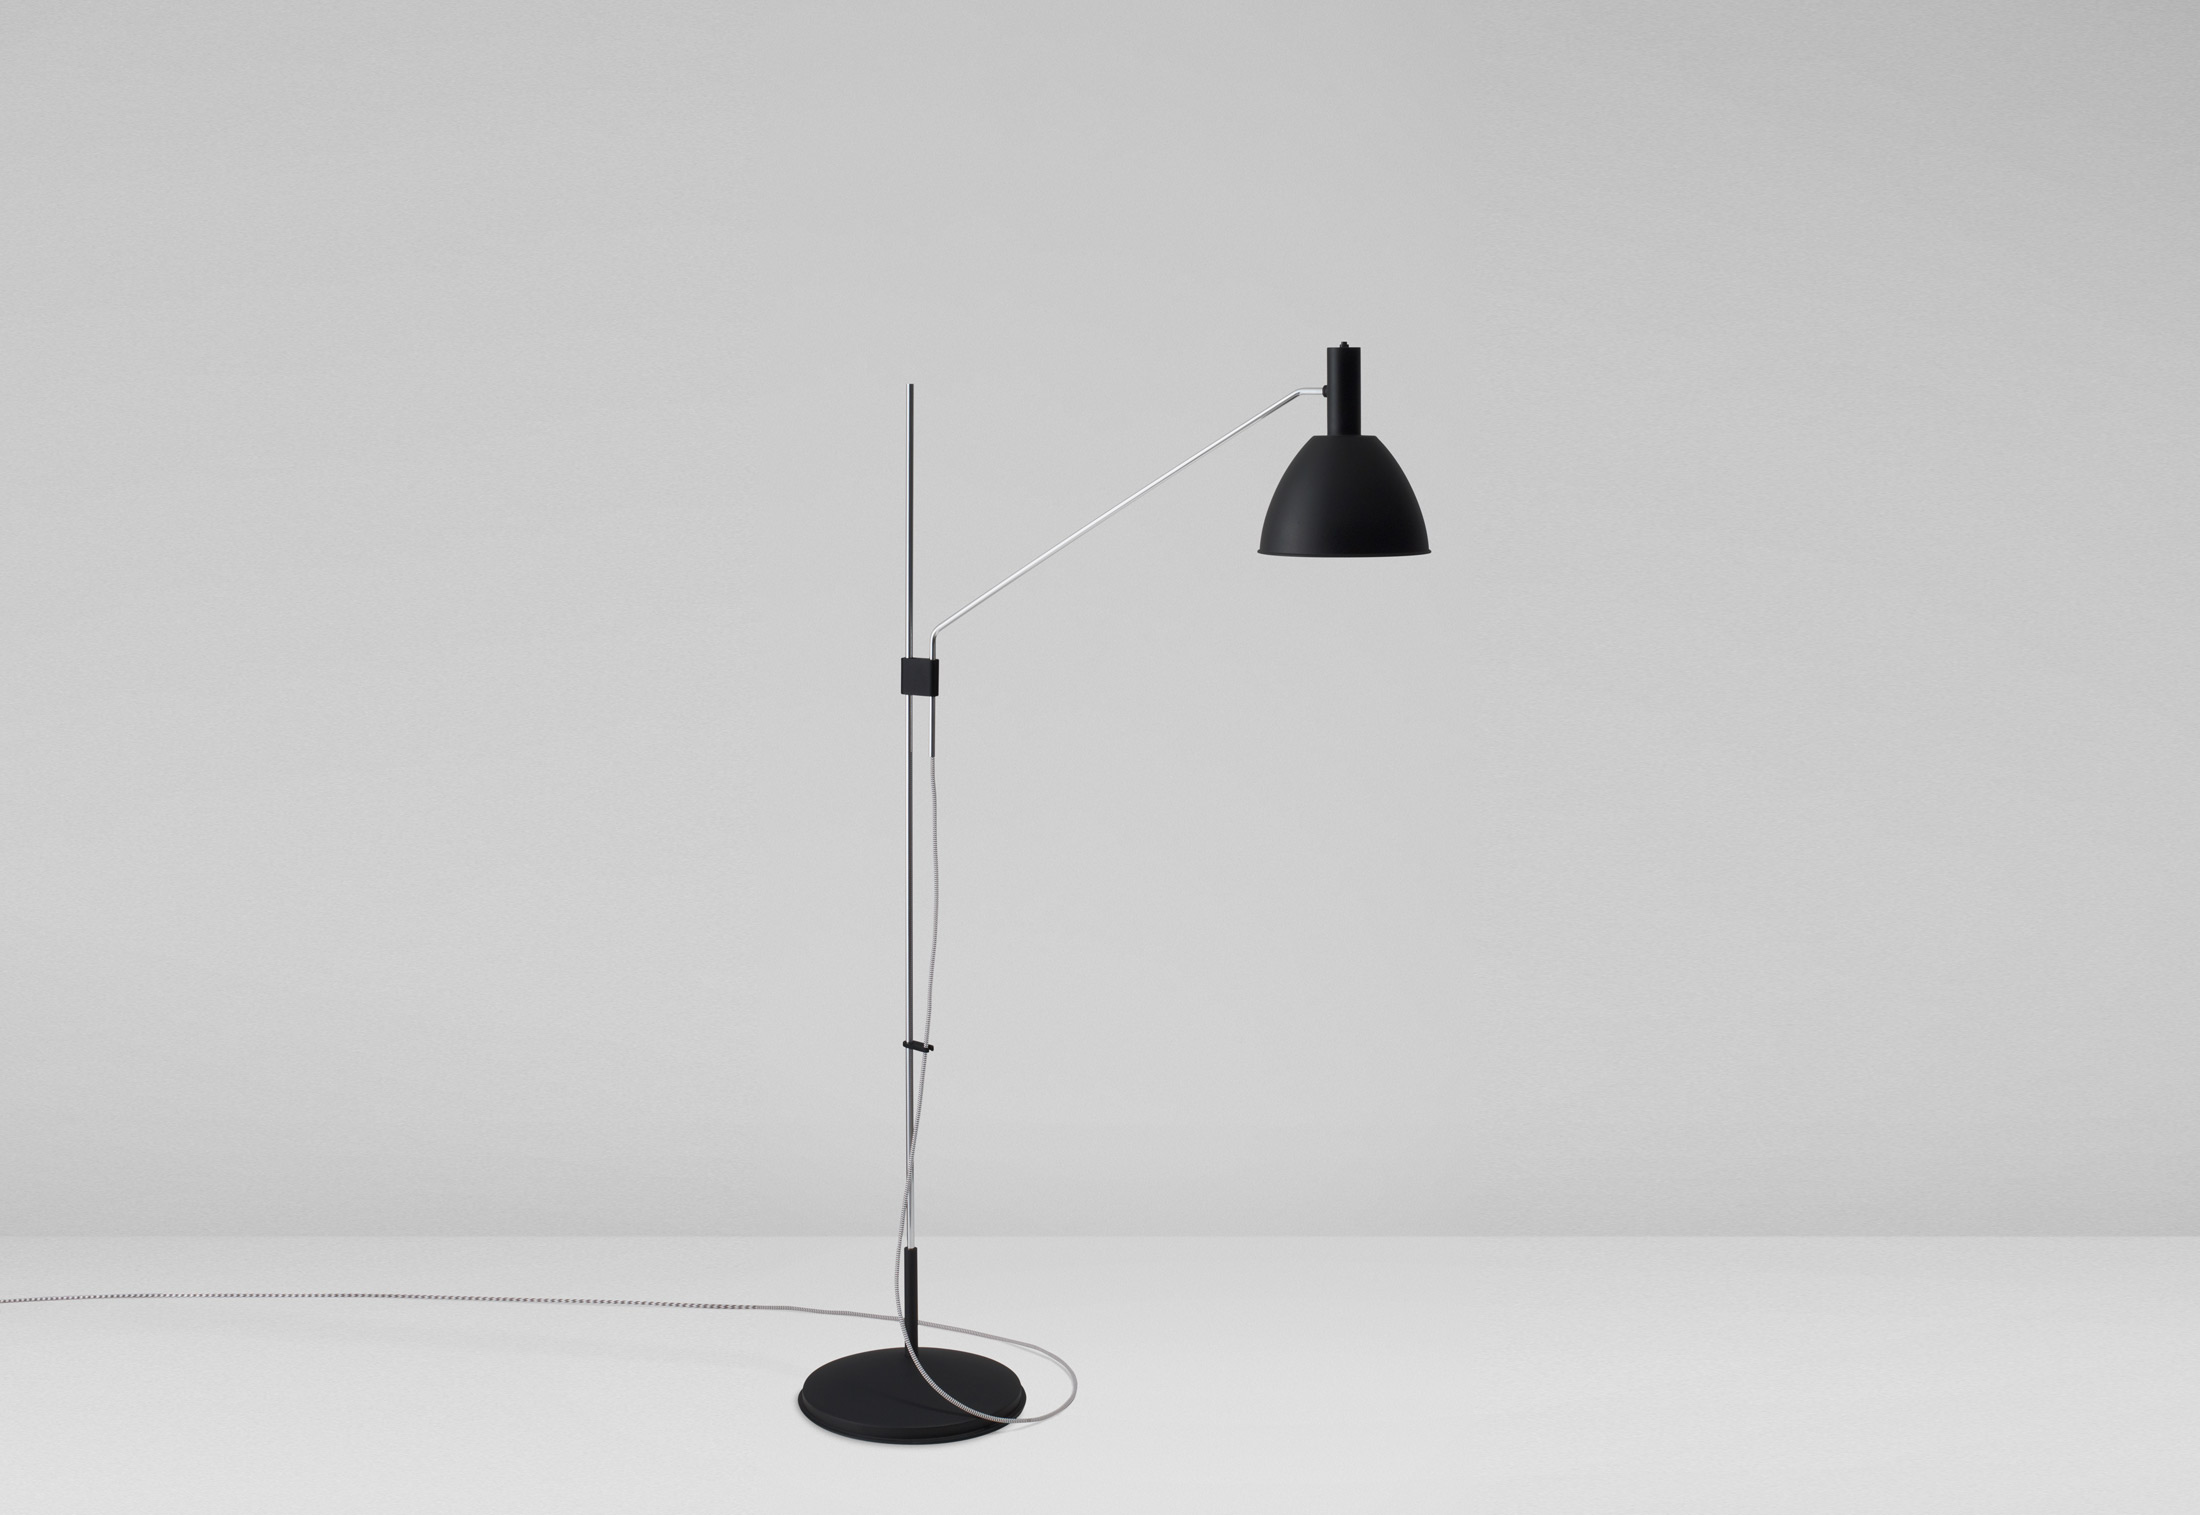 Bauhaus Paravent Bauhaus S Led By Lumini Stylepark